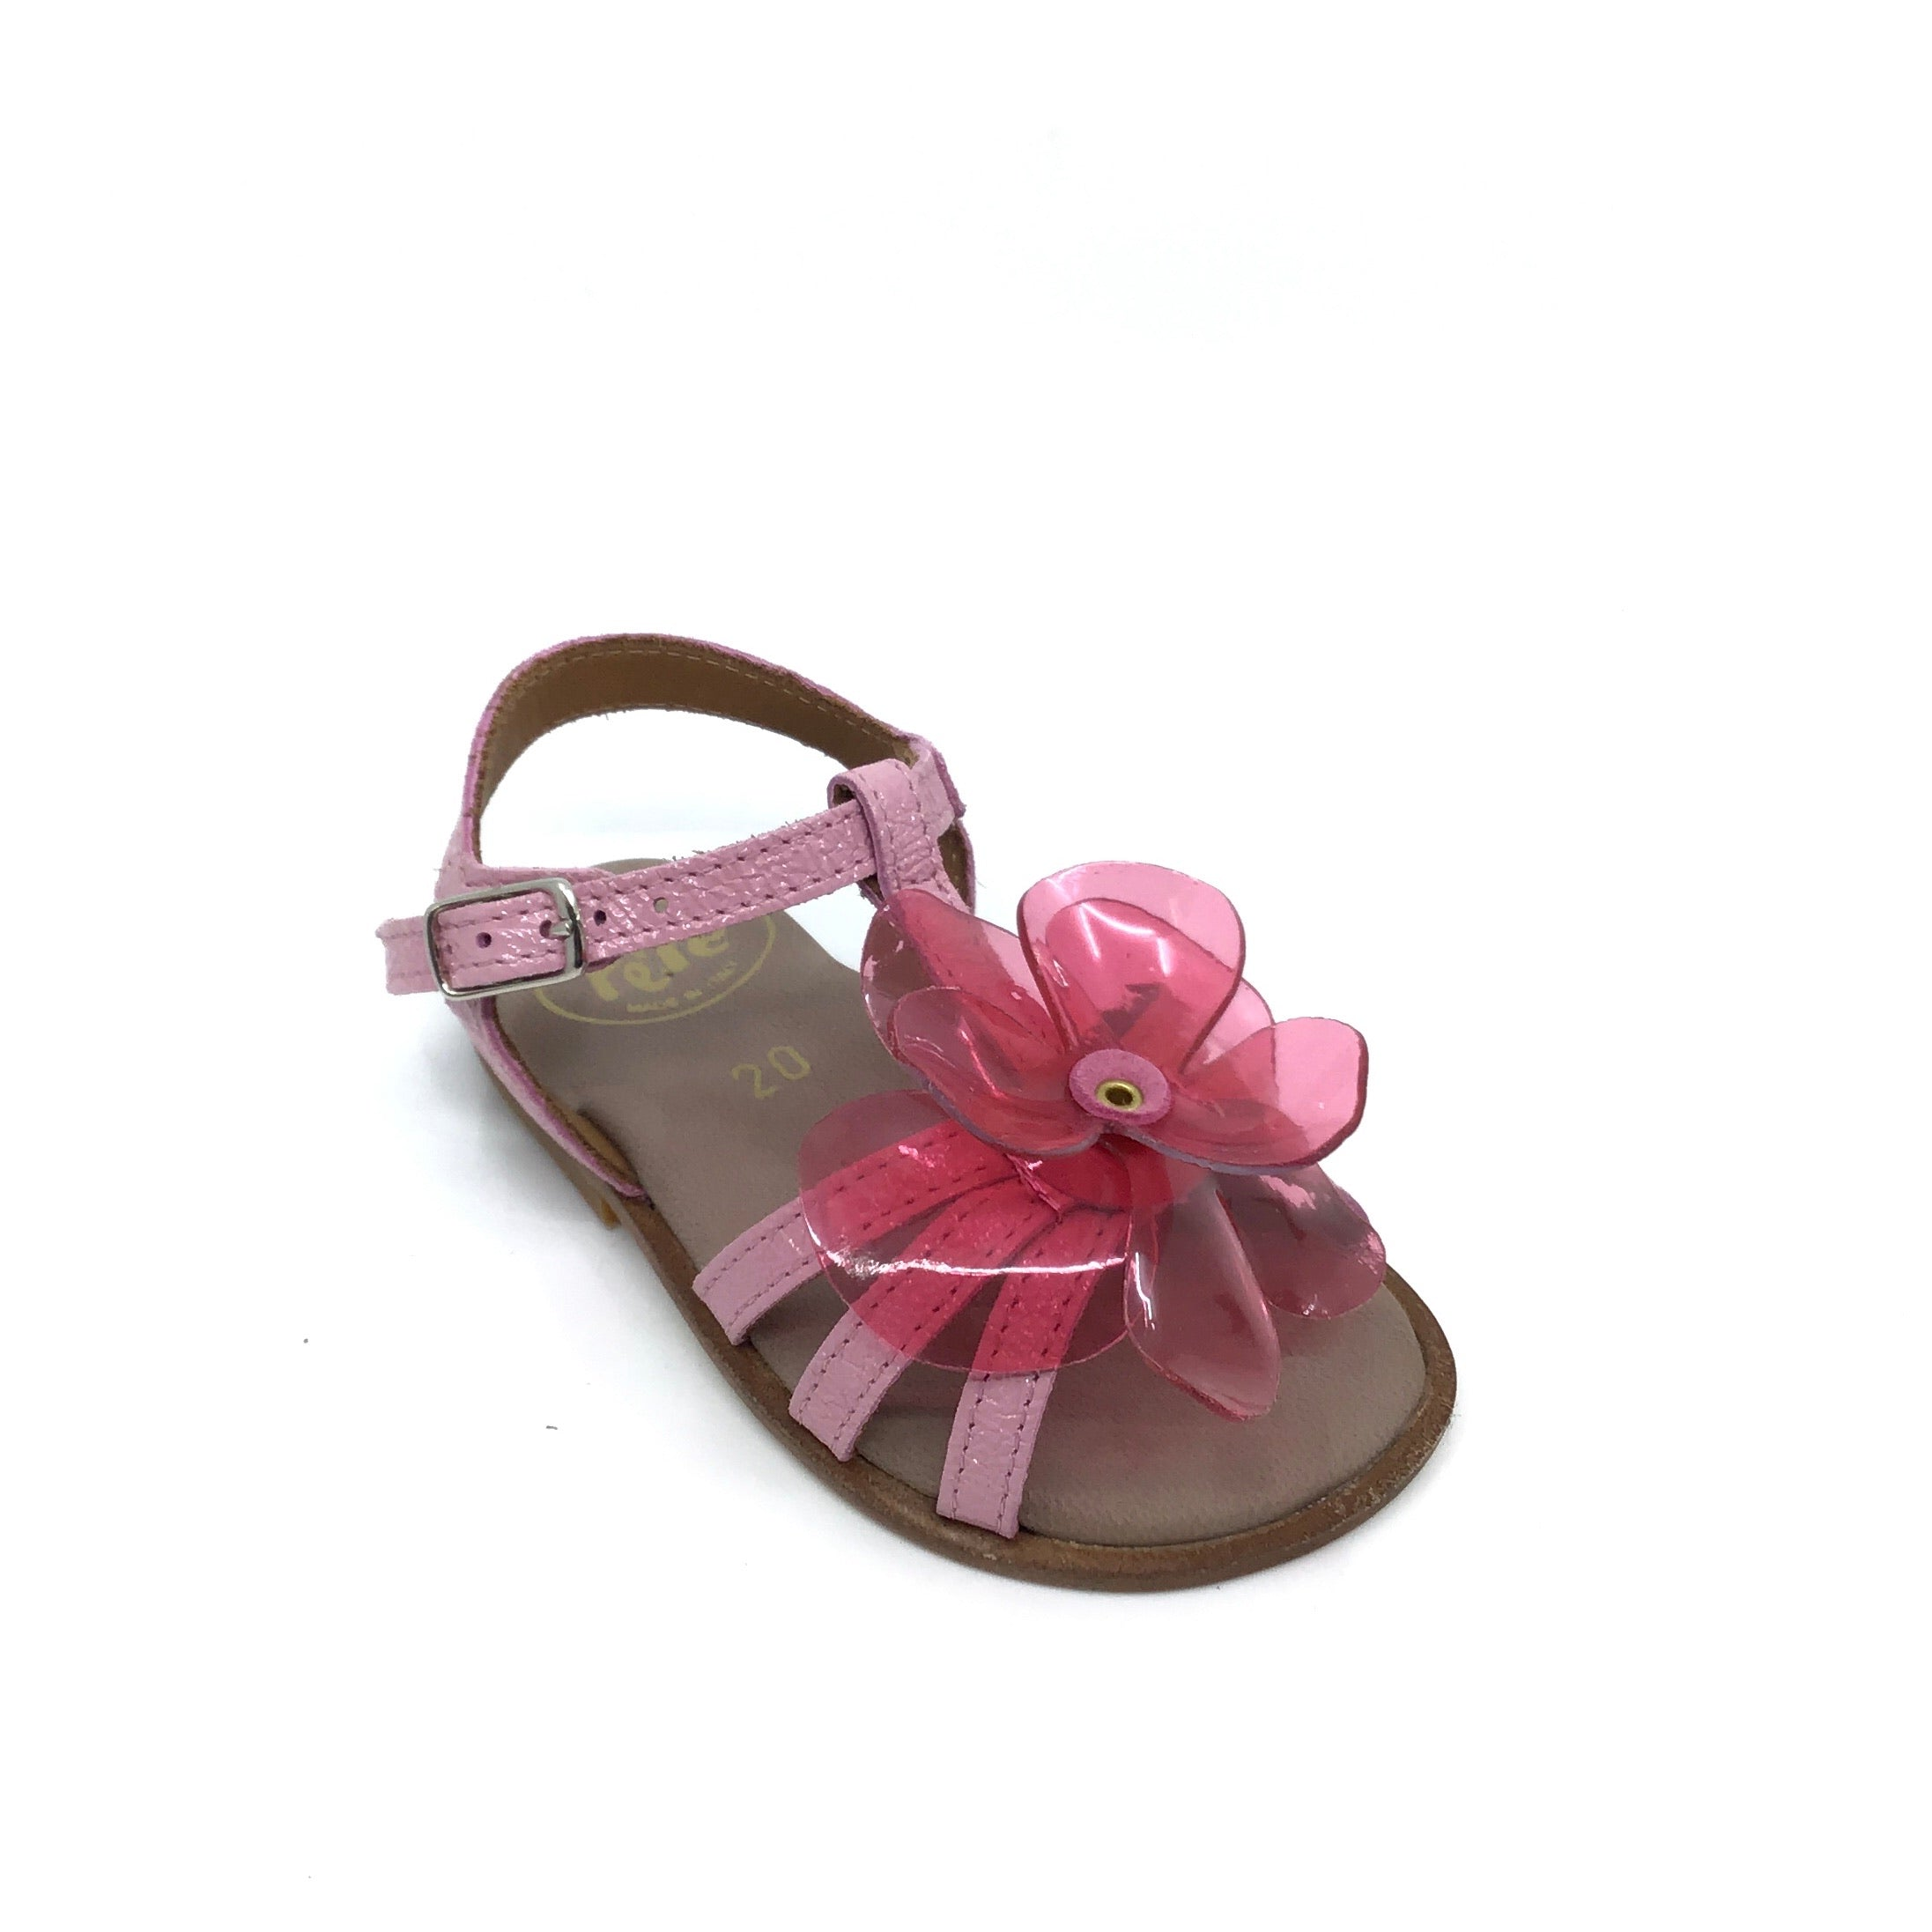 Pepe Pink Sandal with Flower